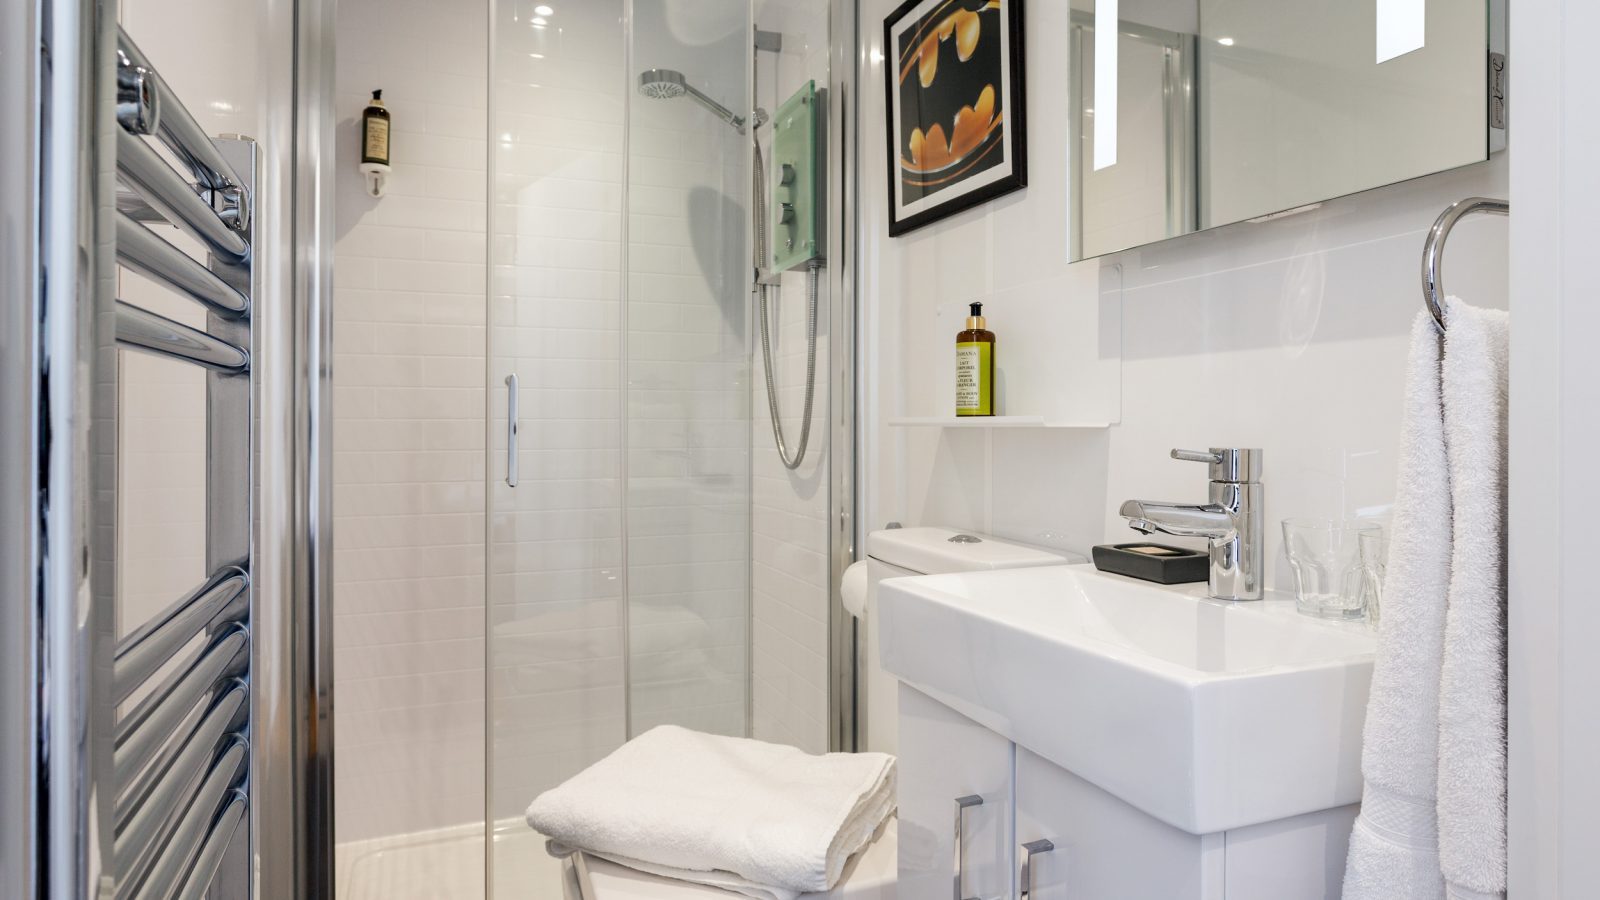 Modest sized ensuite with shower